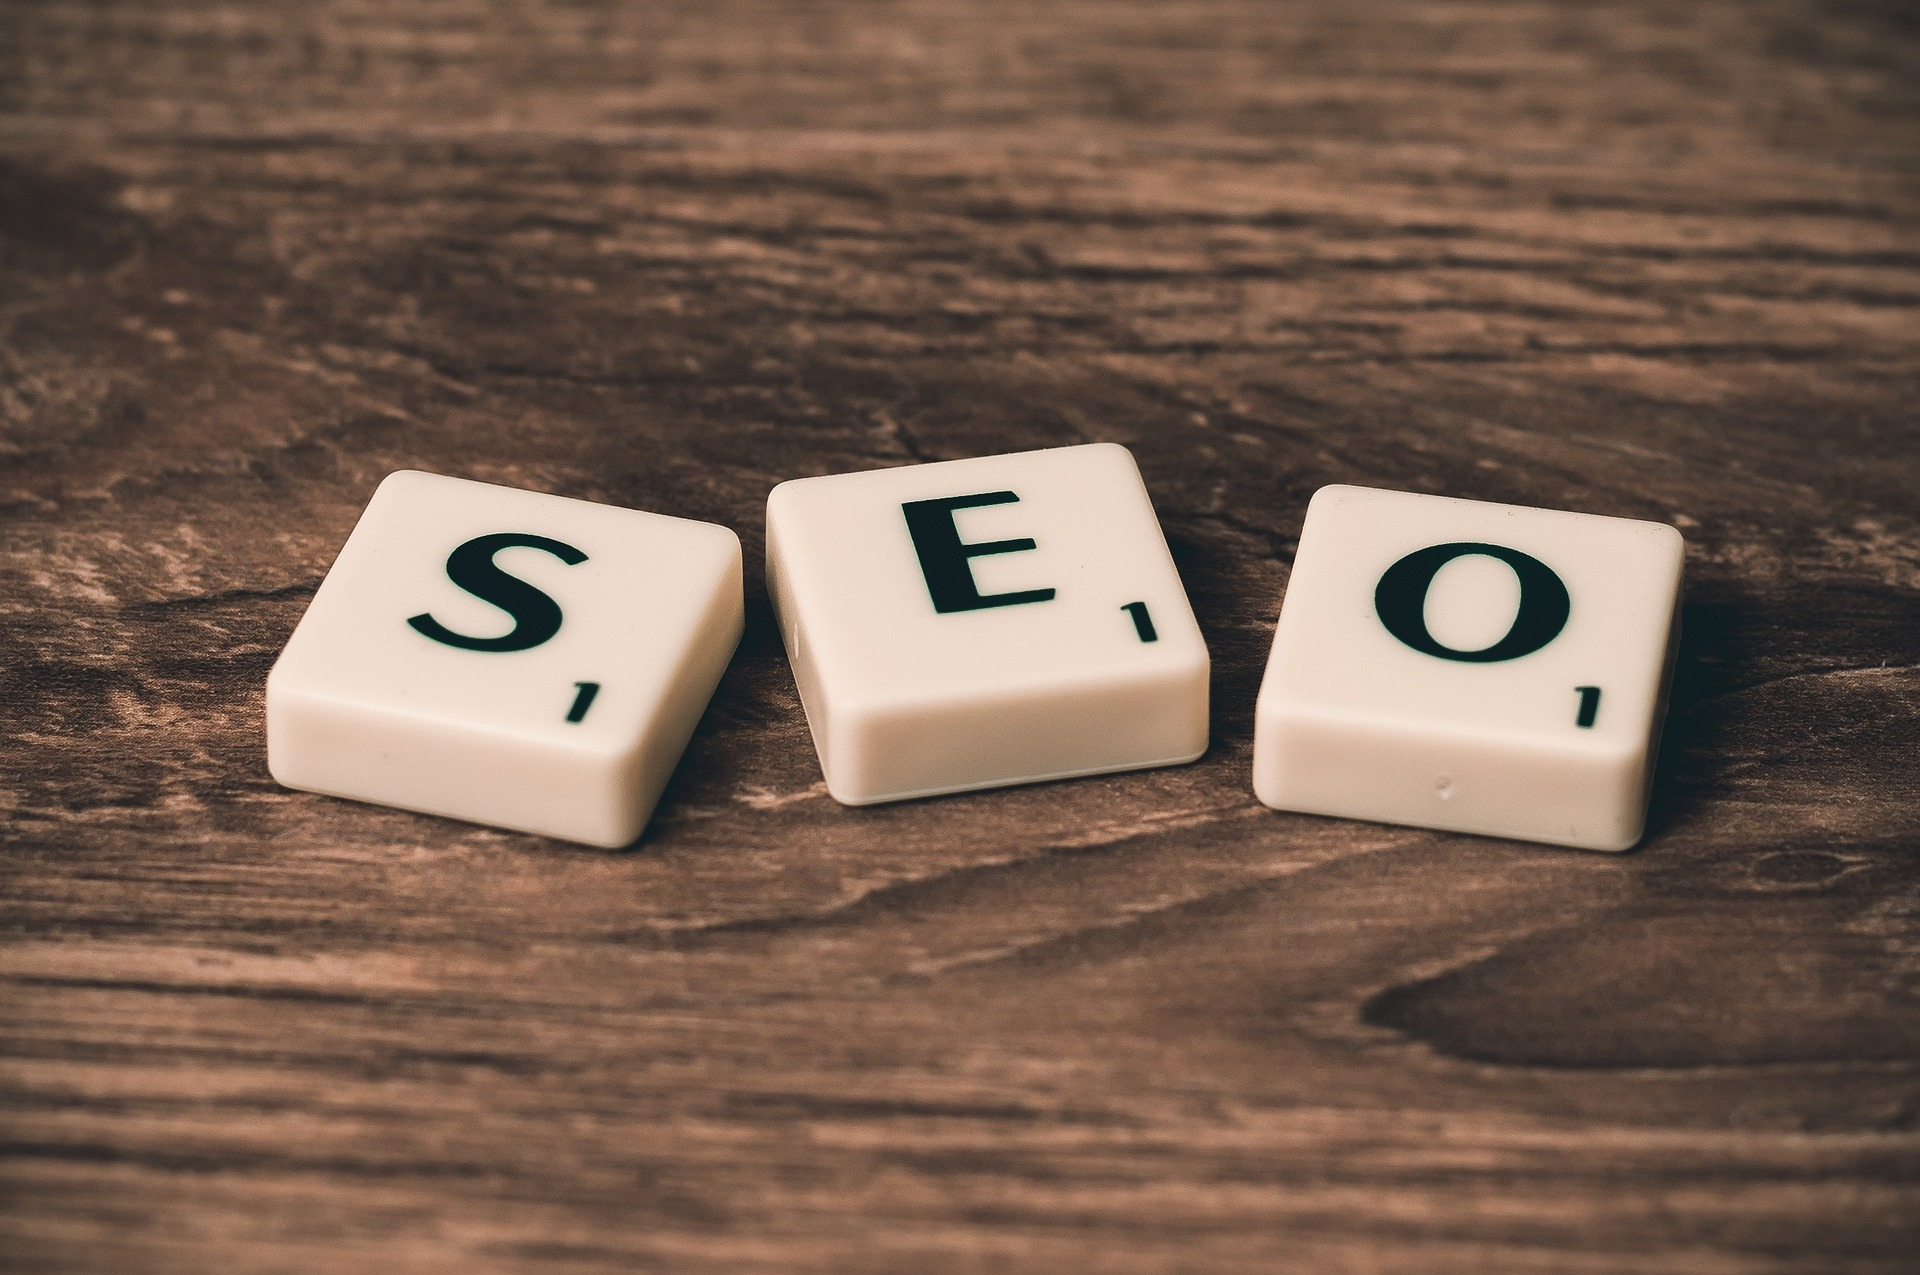 SEO is how you get seen, but it can also be used against you by a competitor.